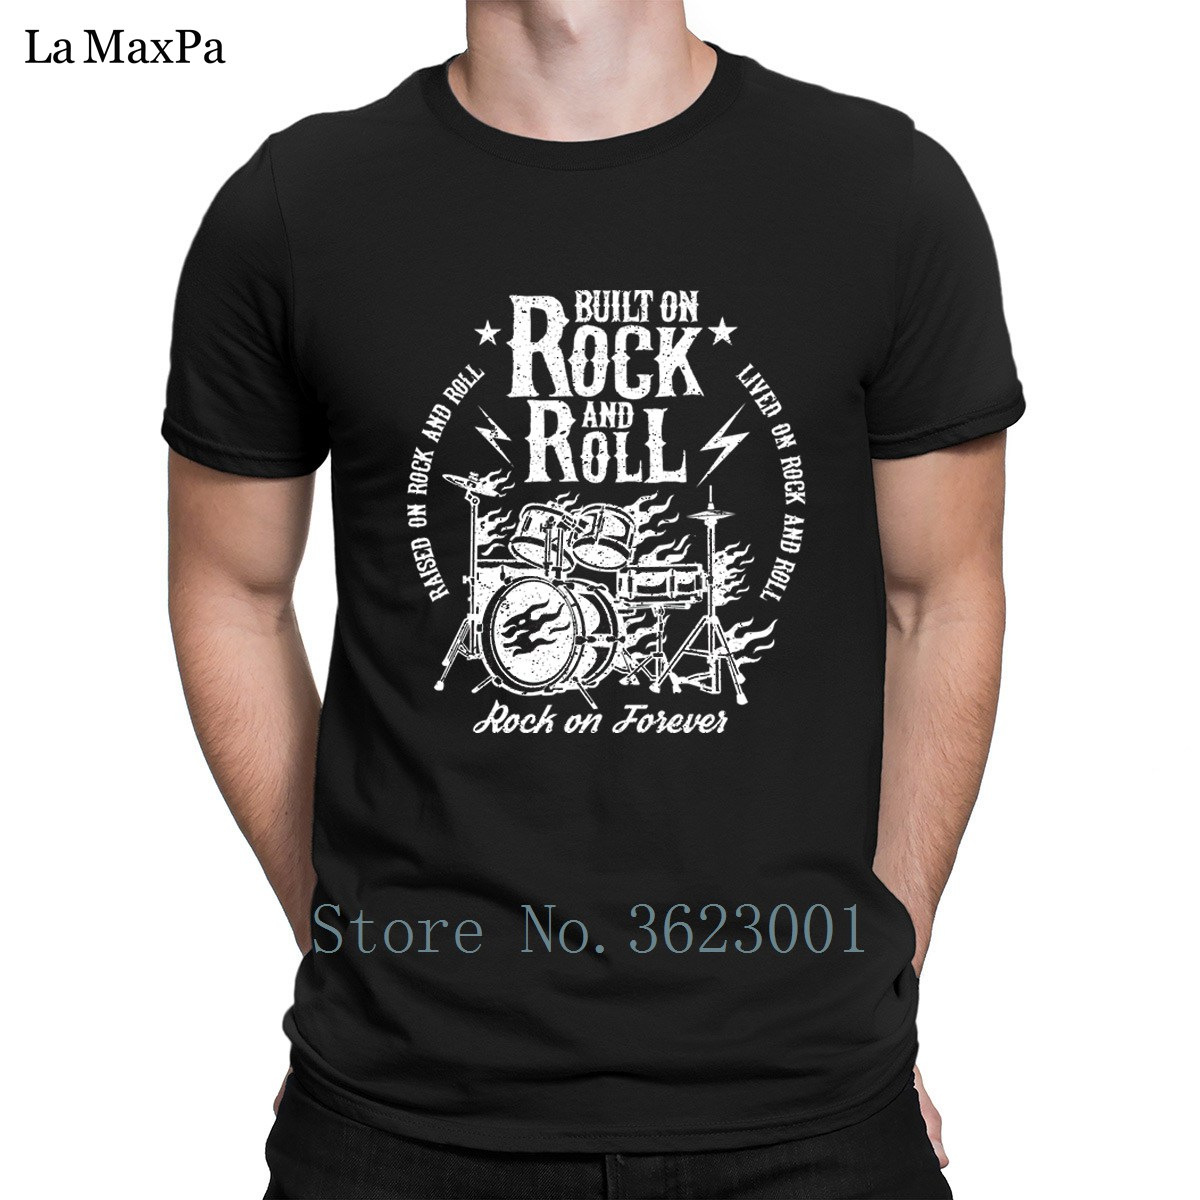 Creative Awesome Men Tee Shirt Built On Rock And Roll Tshirt For Men Streetwear T Shirt Mens Unique T-Shirt Round Neck Cute